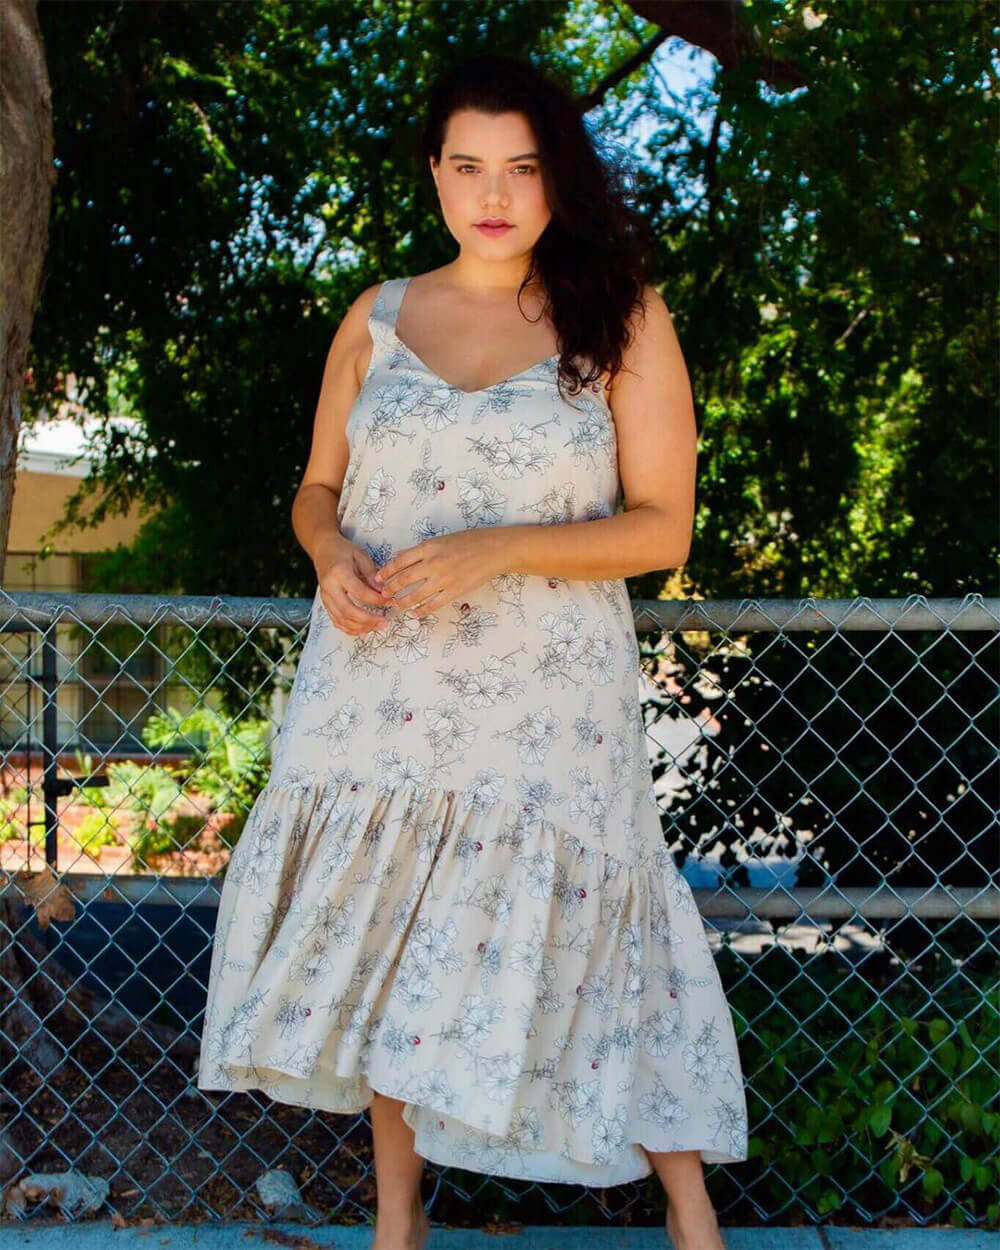 İnan Işik plus size clothing collection